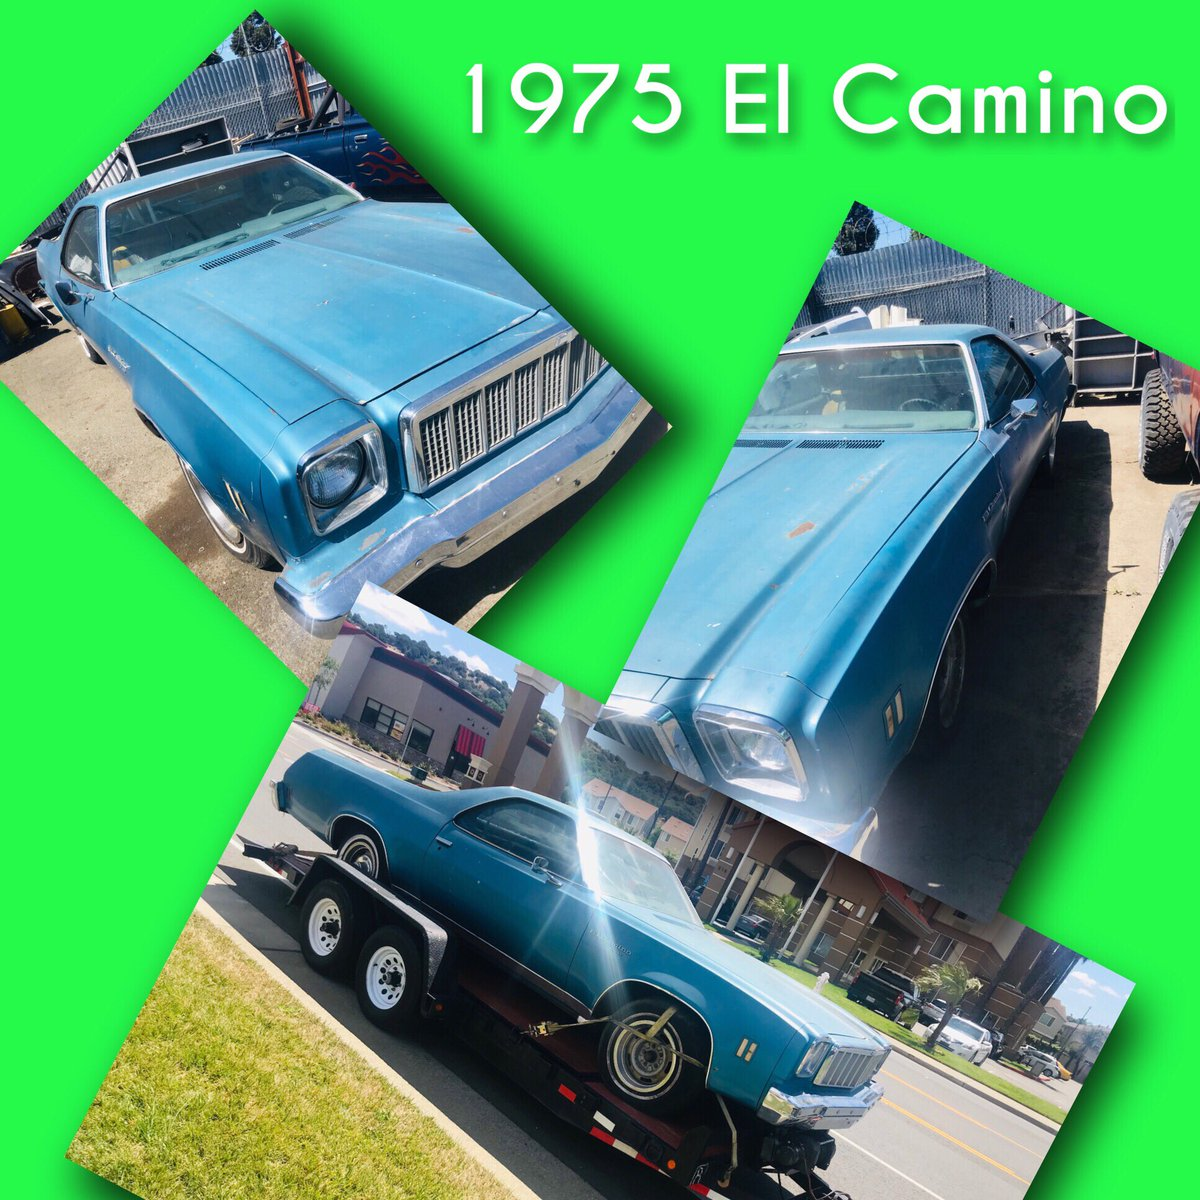 1976 Chevy El Camino Do I build it or do I sell it? #diy #mechanic #carflip #chevy #elcamino #elco #rancharo #forsale #musclecar #classiccarsforsale #classiccar #presmog #smogexempt